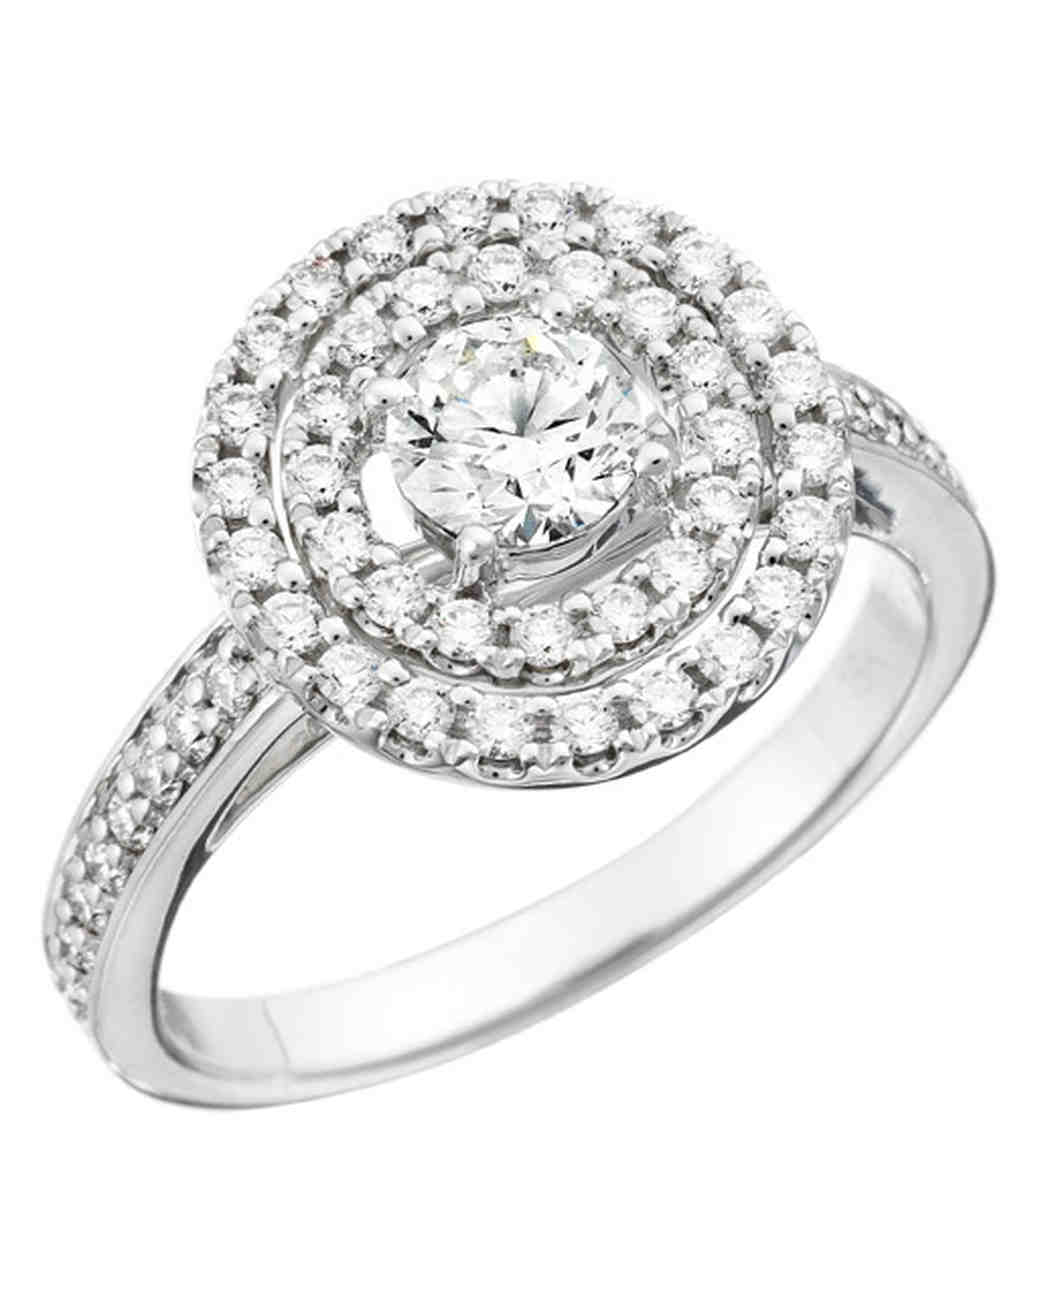 twist solomon halo diamond item design shared brothers engagement with ring natalie prong rings band e k